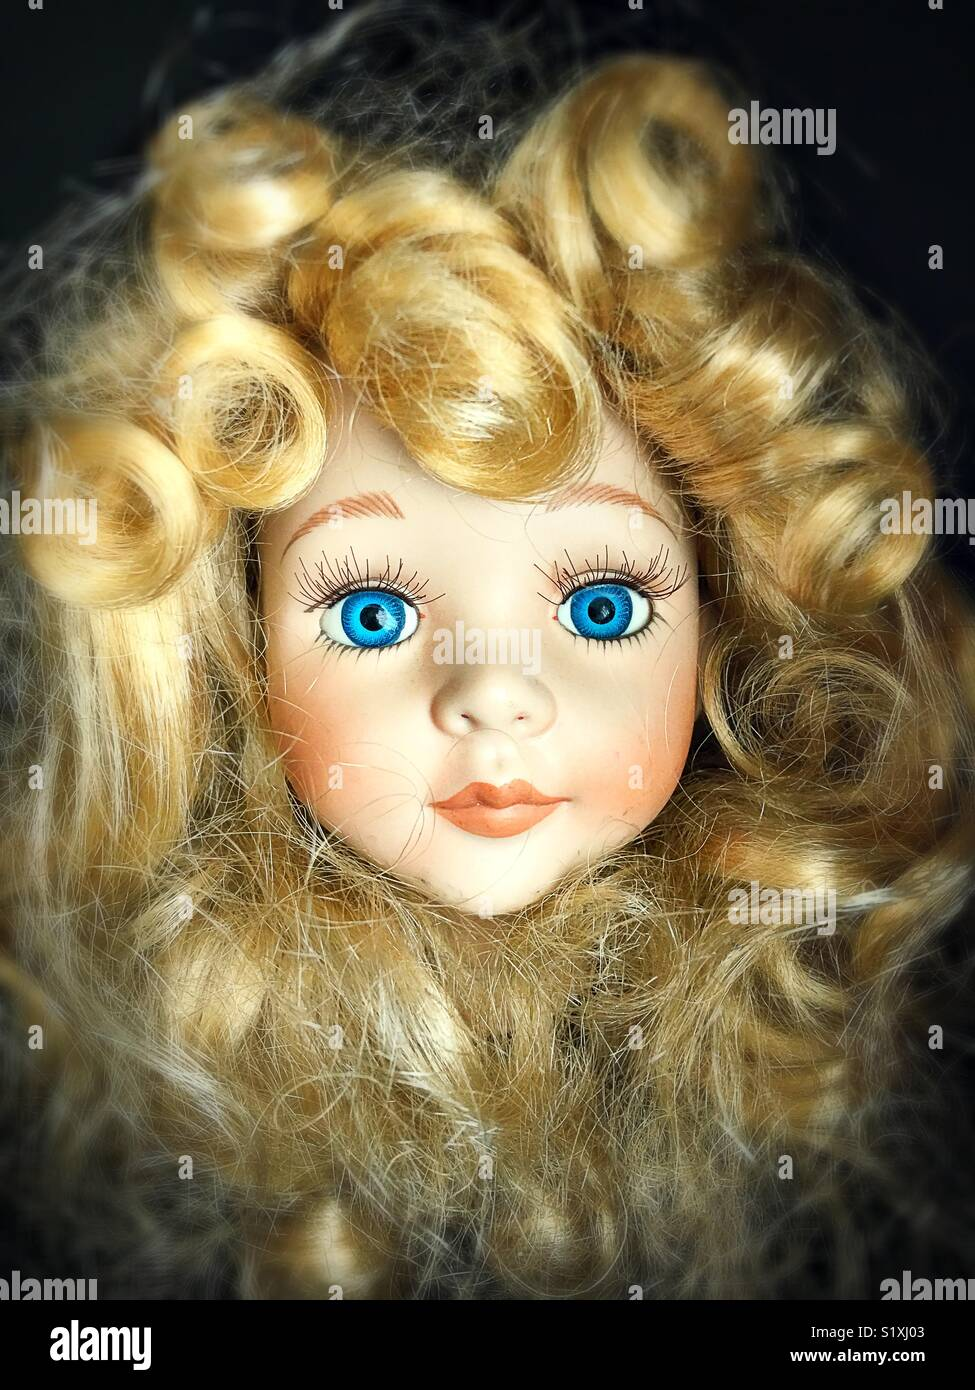 Doll head with blonde curls and blue eyes. - Stock Image